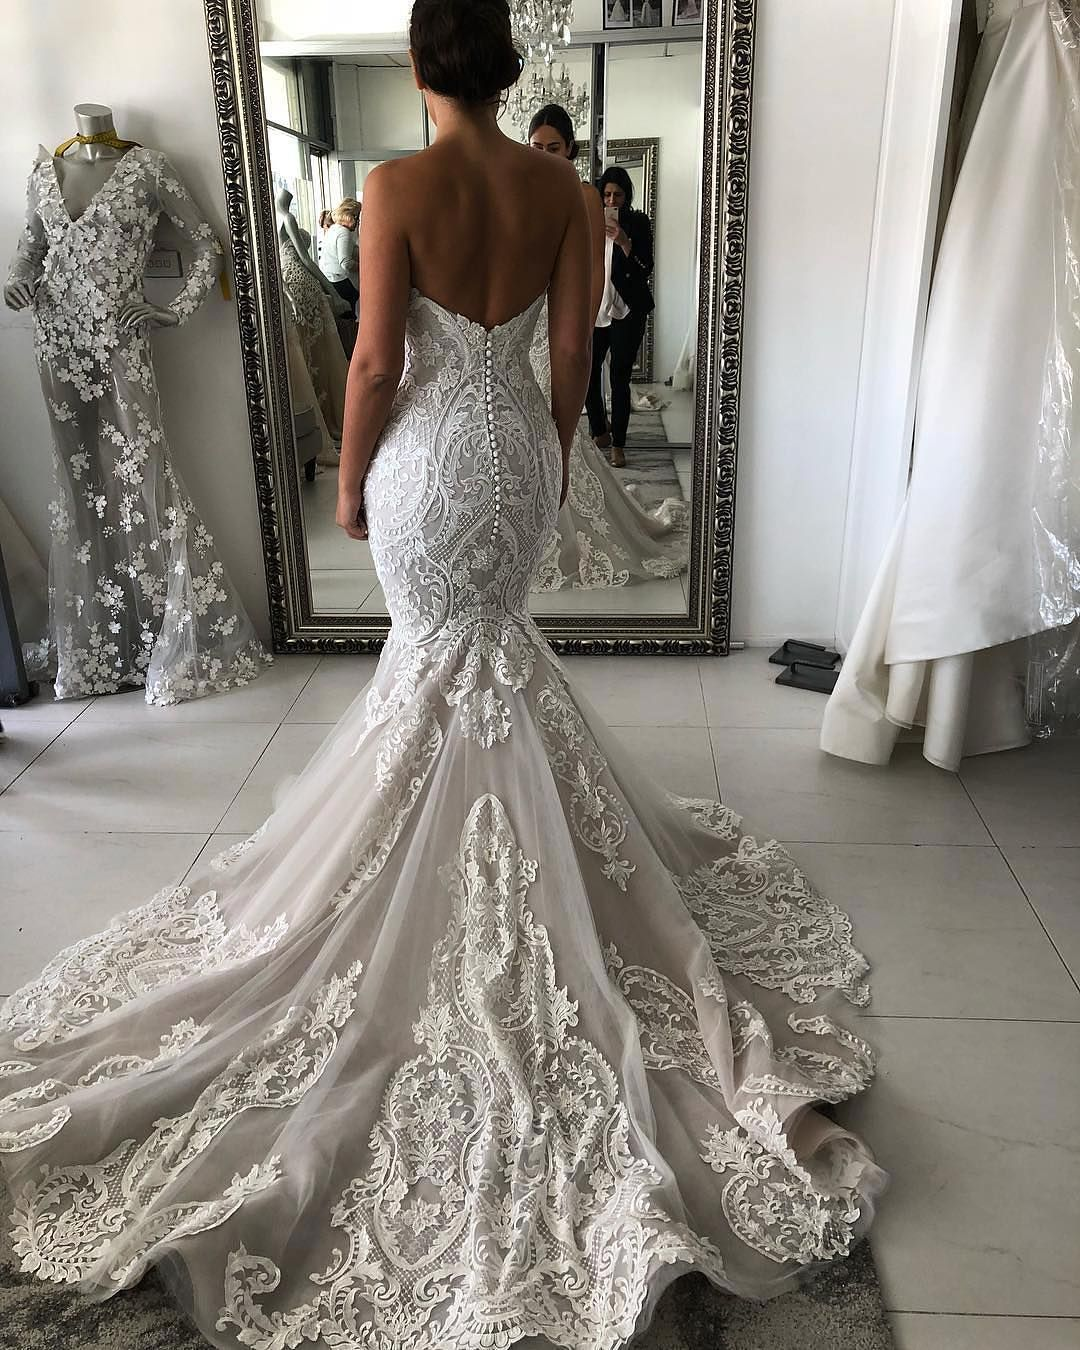 The Brides Style On Instagram Beautiful Norma And Lili Bridalcoutur Lace Sweetheart Wedding Dress Lace Wedding Dress Vintage Lace Mermaid Wedding Dress